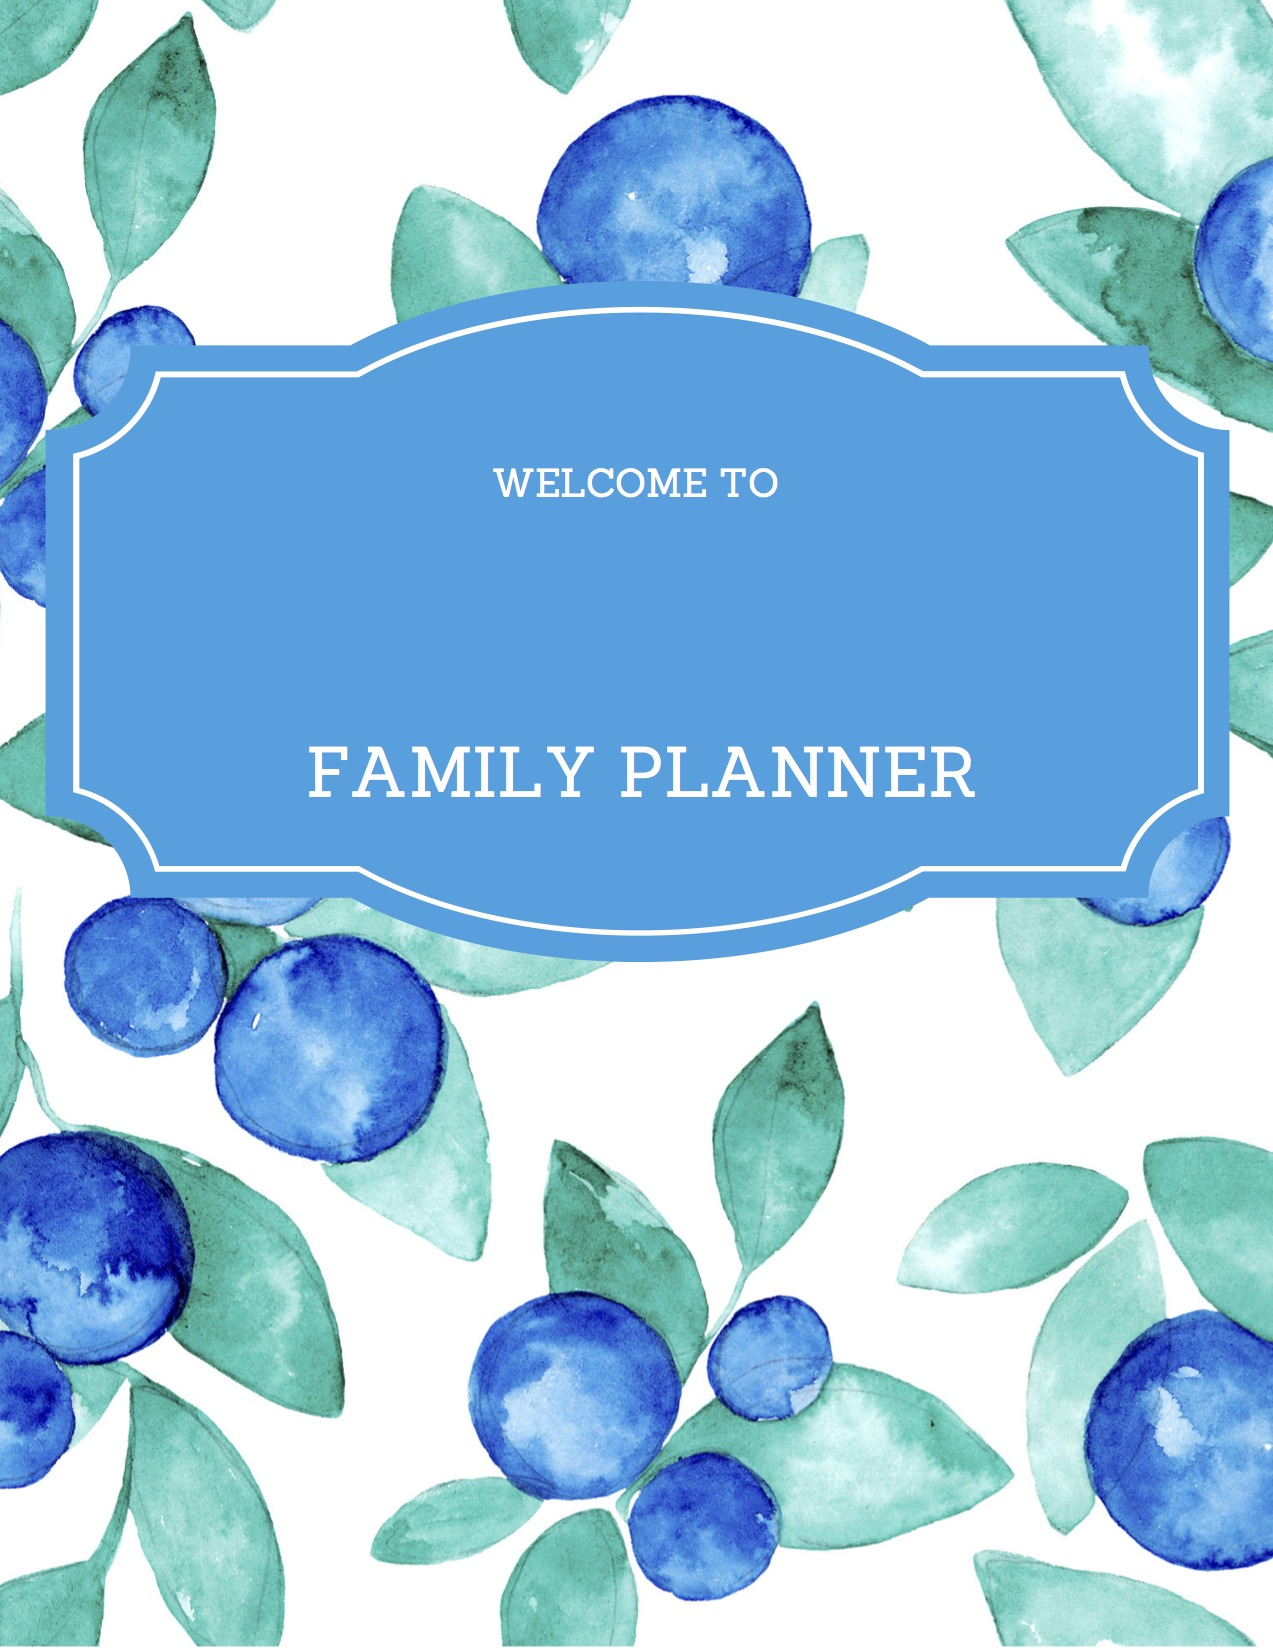 image about Free Printable Family Planner called Totally free PRINTABLE: Spouse and children Planner - Evening meal Programs, Contacts and Further more